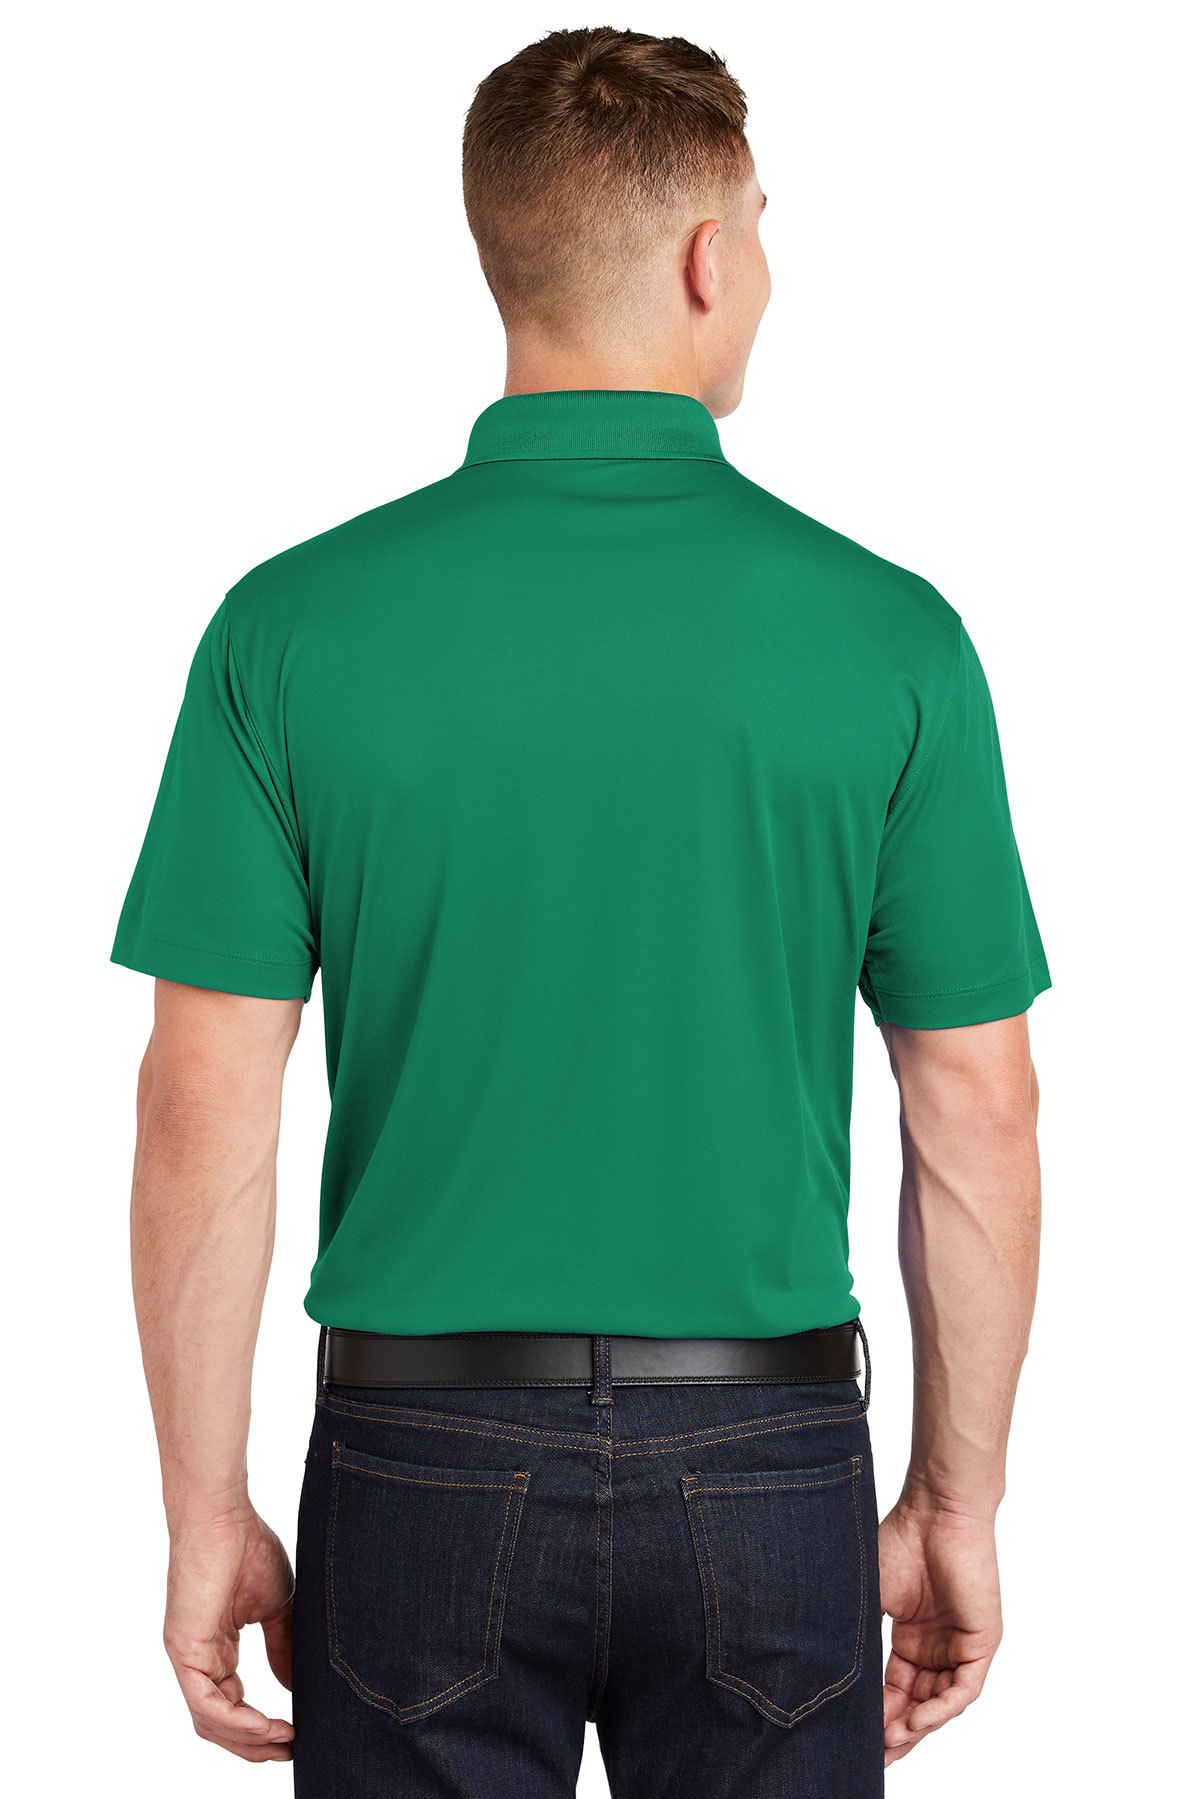 Sport Tek Tall Micropique Sport Wick Polo Performance Polos Knits Sanmar Not just a sharp look—it's snag resistant, too! sport tek tall micropique sport wick polo performance polos knits sanmar